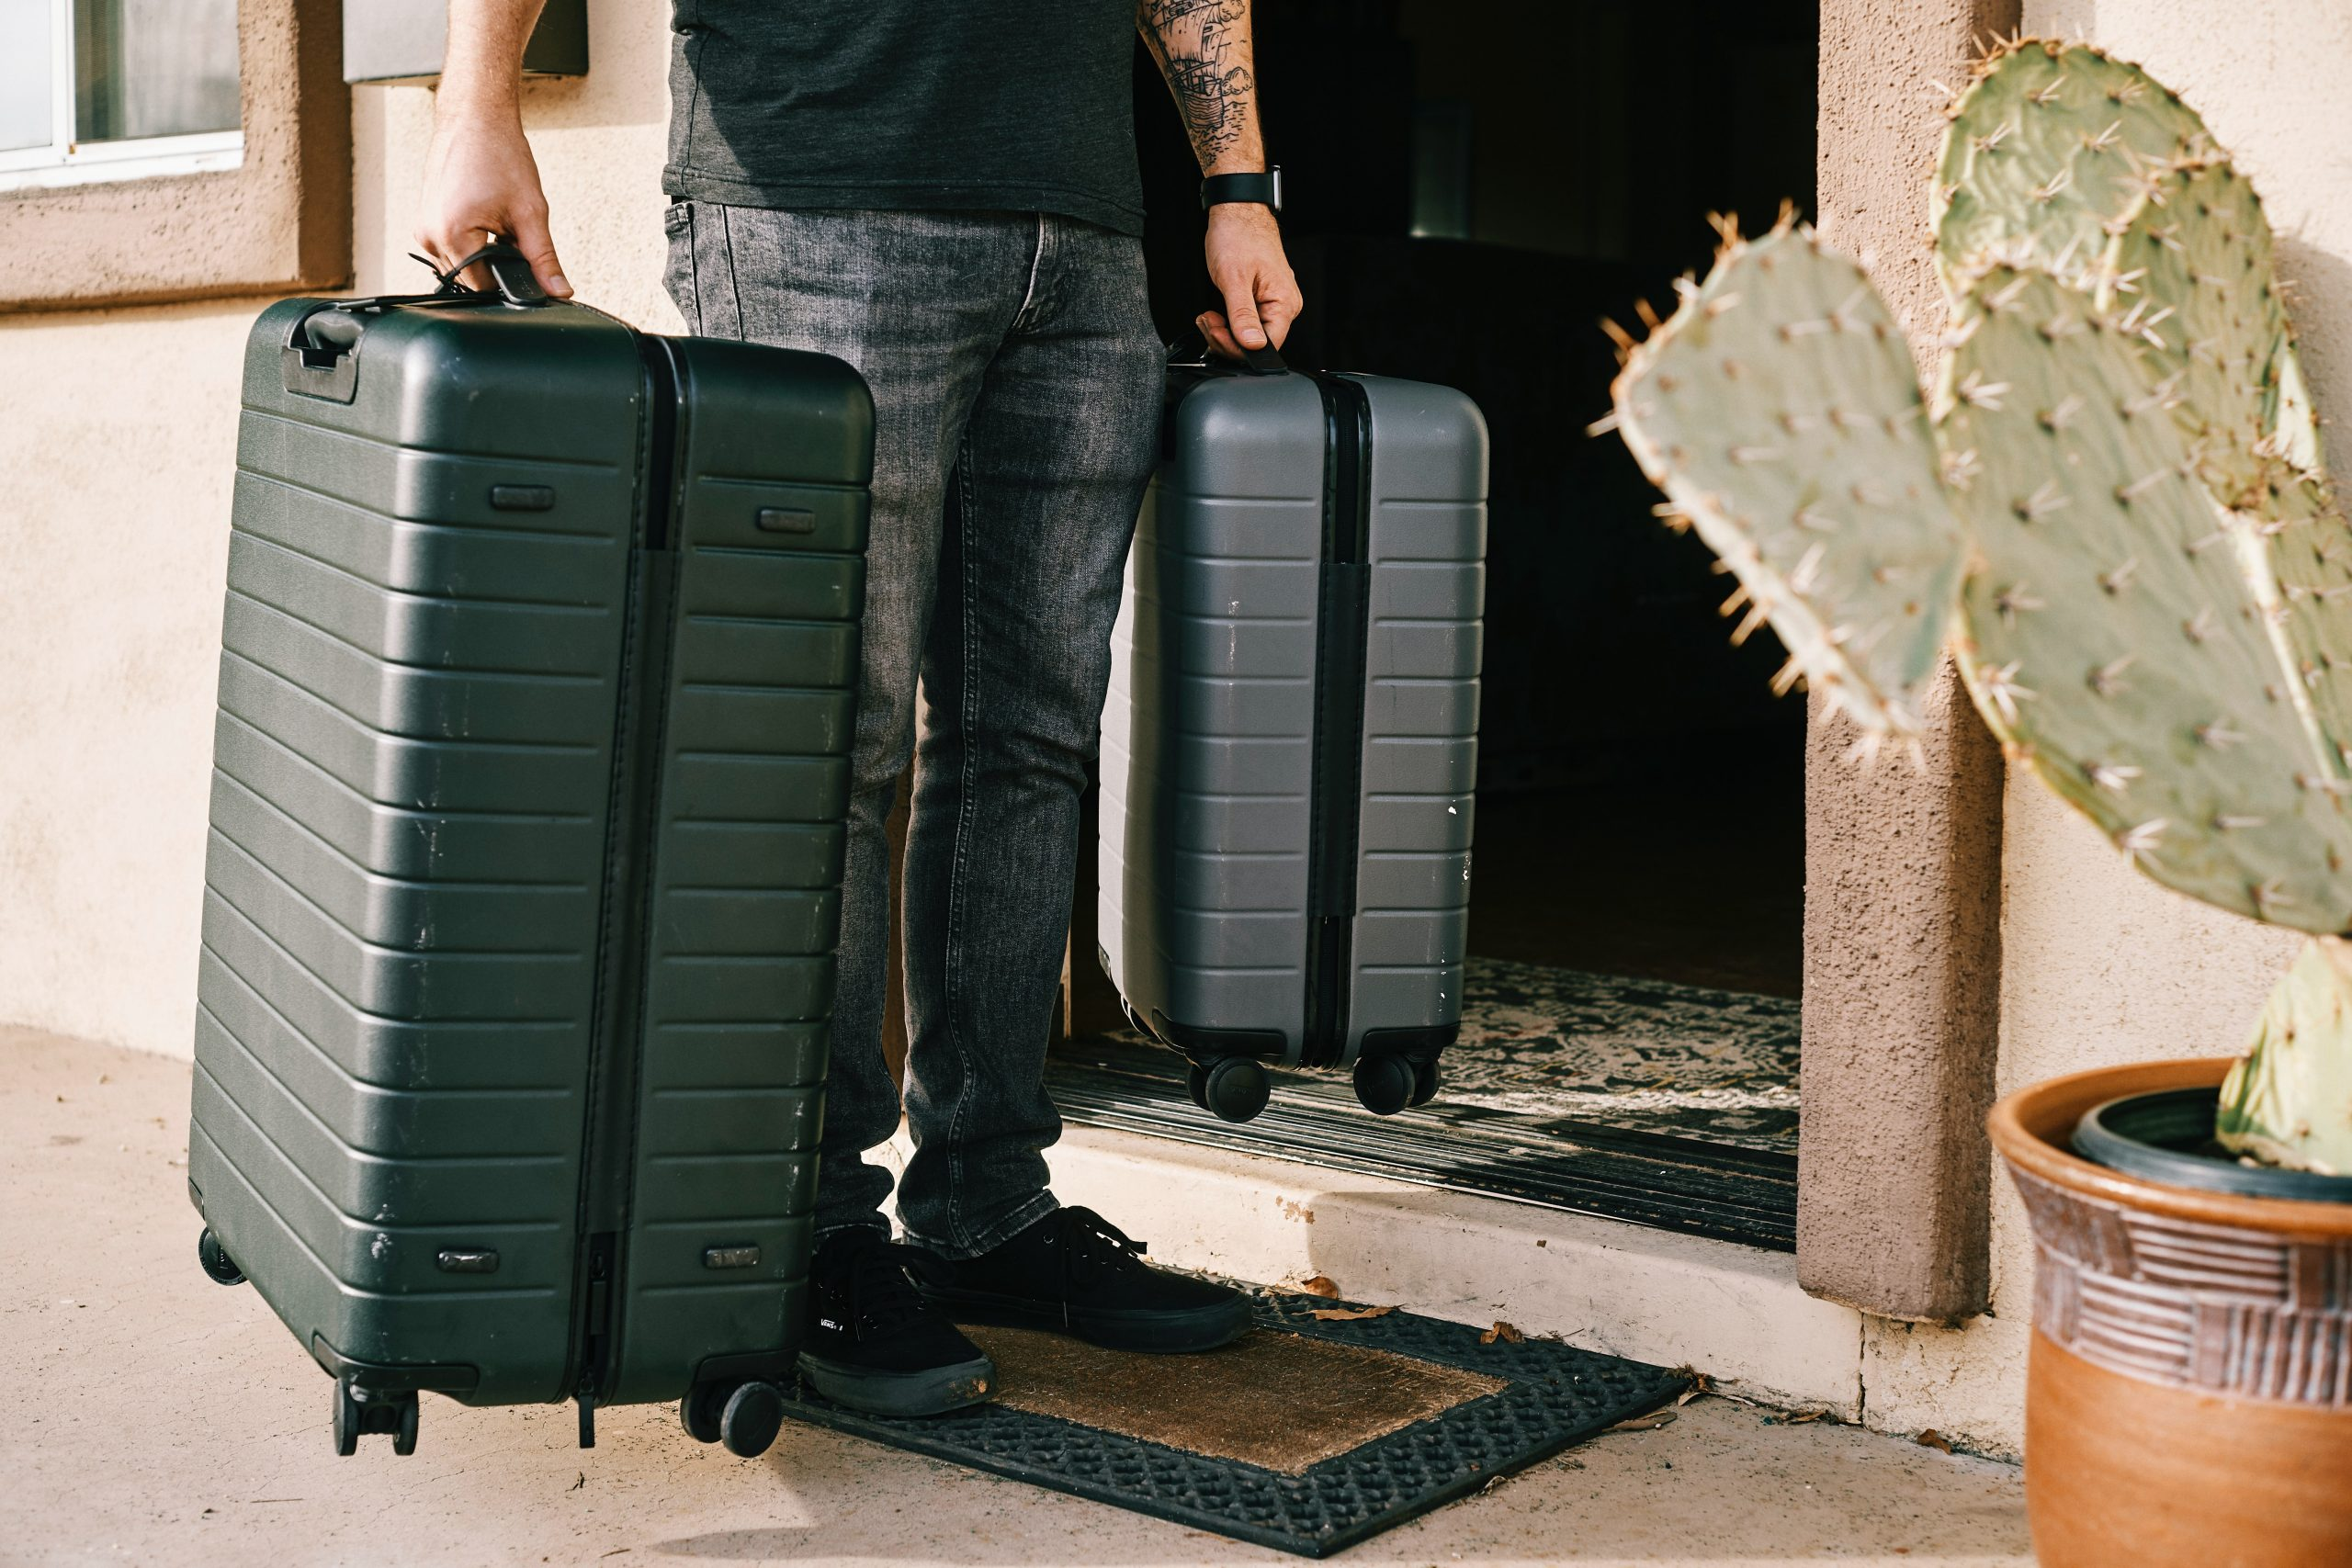 How to Lock a Suitcase Without a Lock